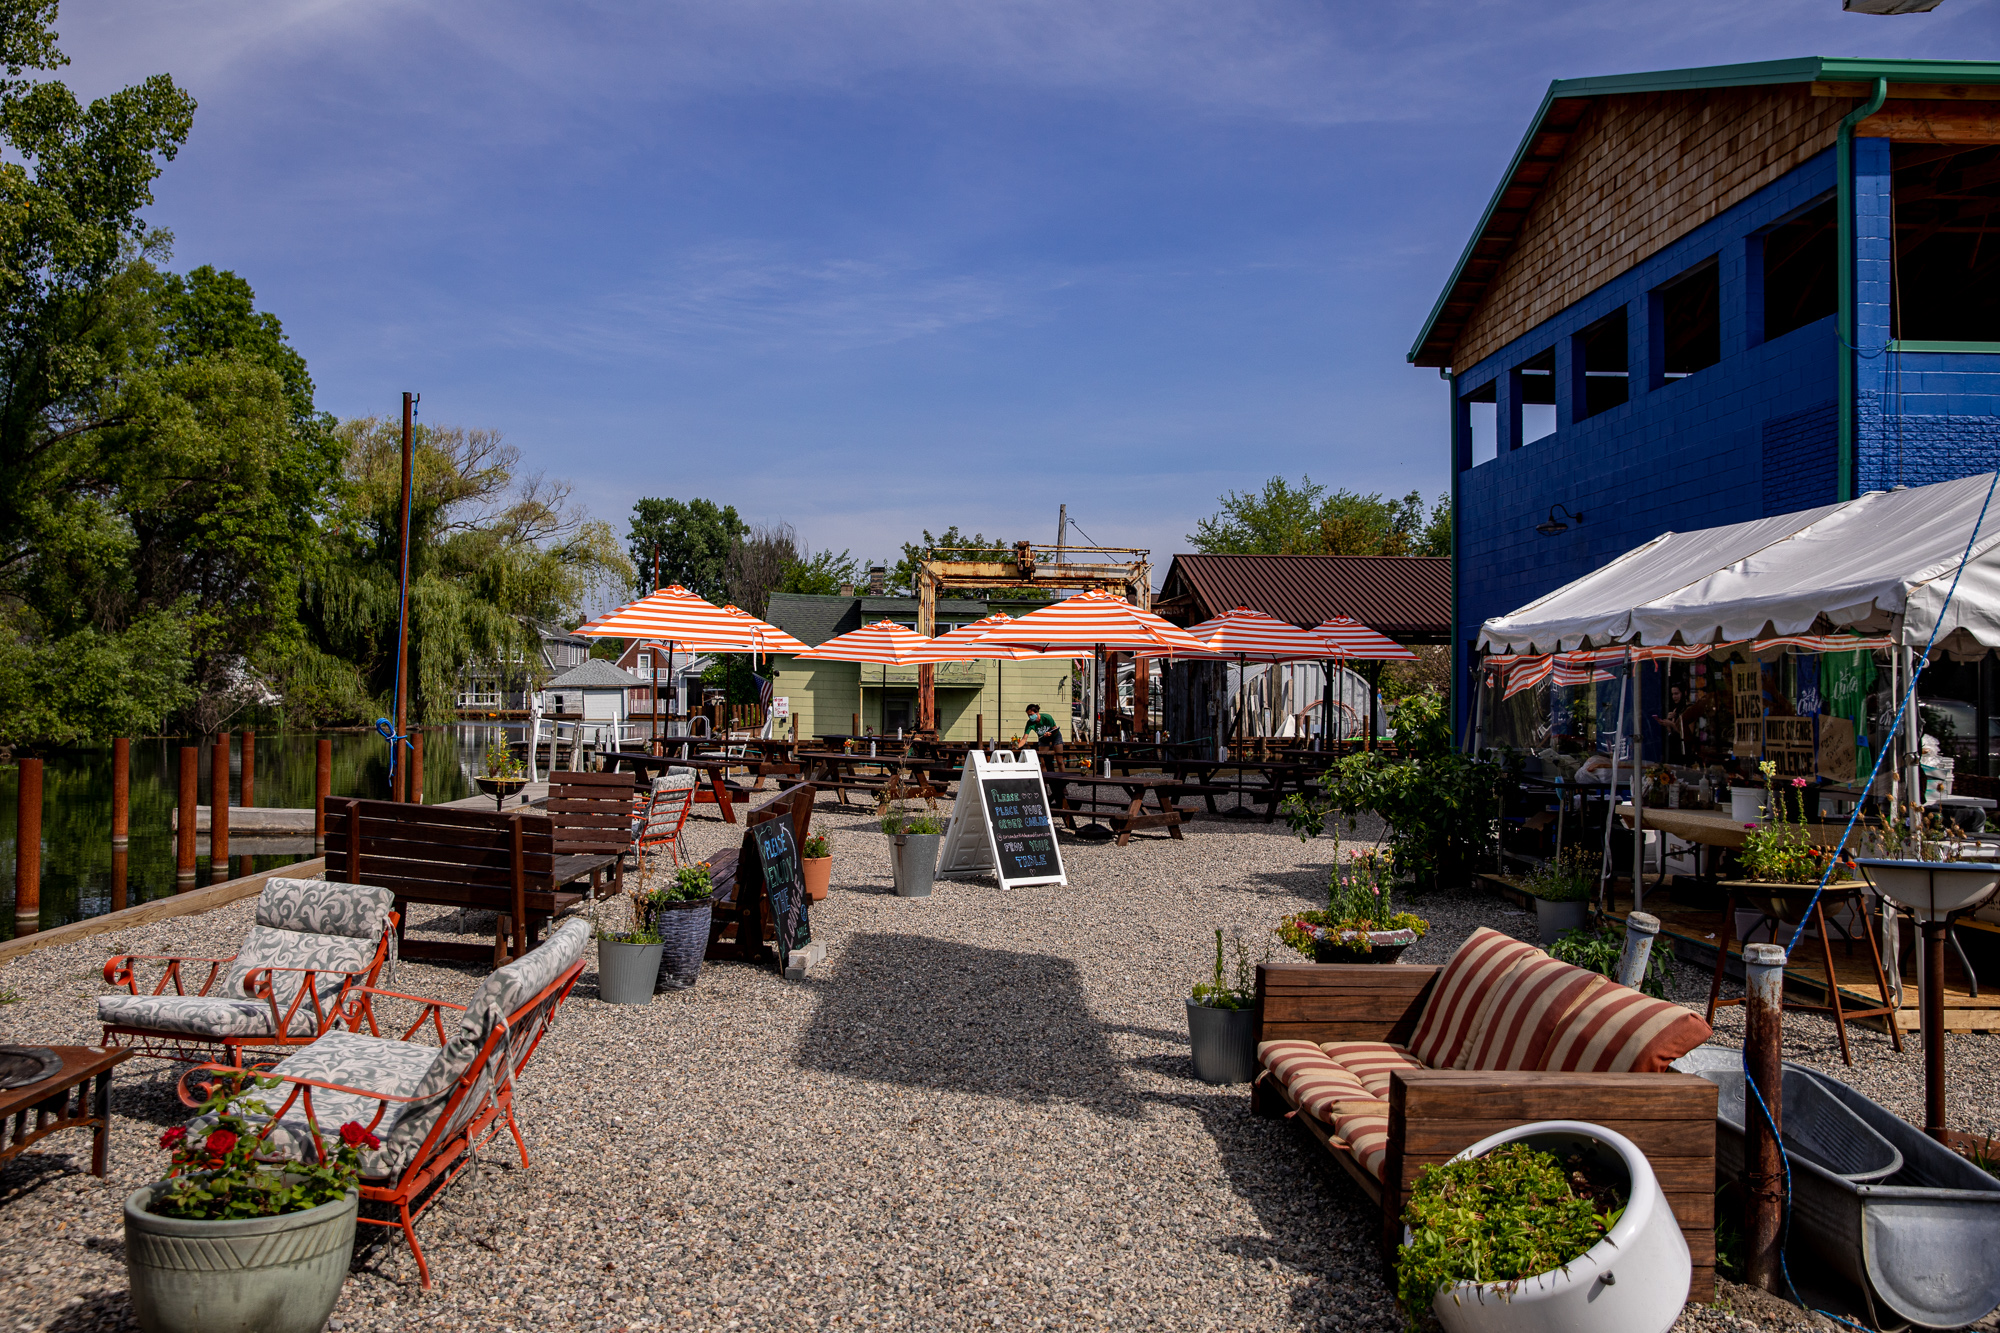 A blue building next to patio chairs, a fire pit, a couch, a tent with Coriander's prep kitchen, and picnic tables with umbrellas in the distance.